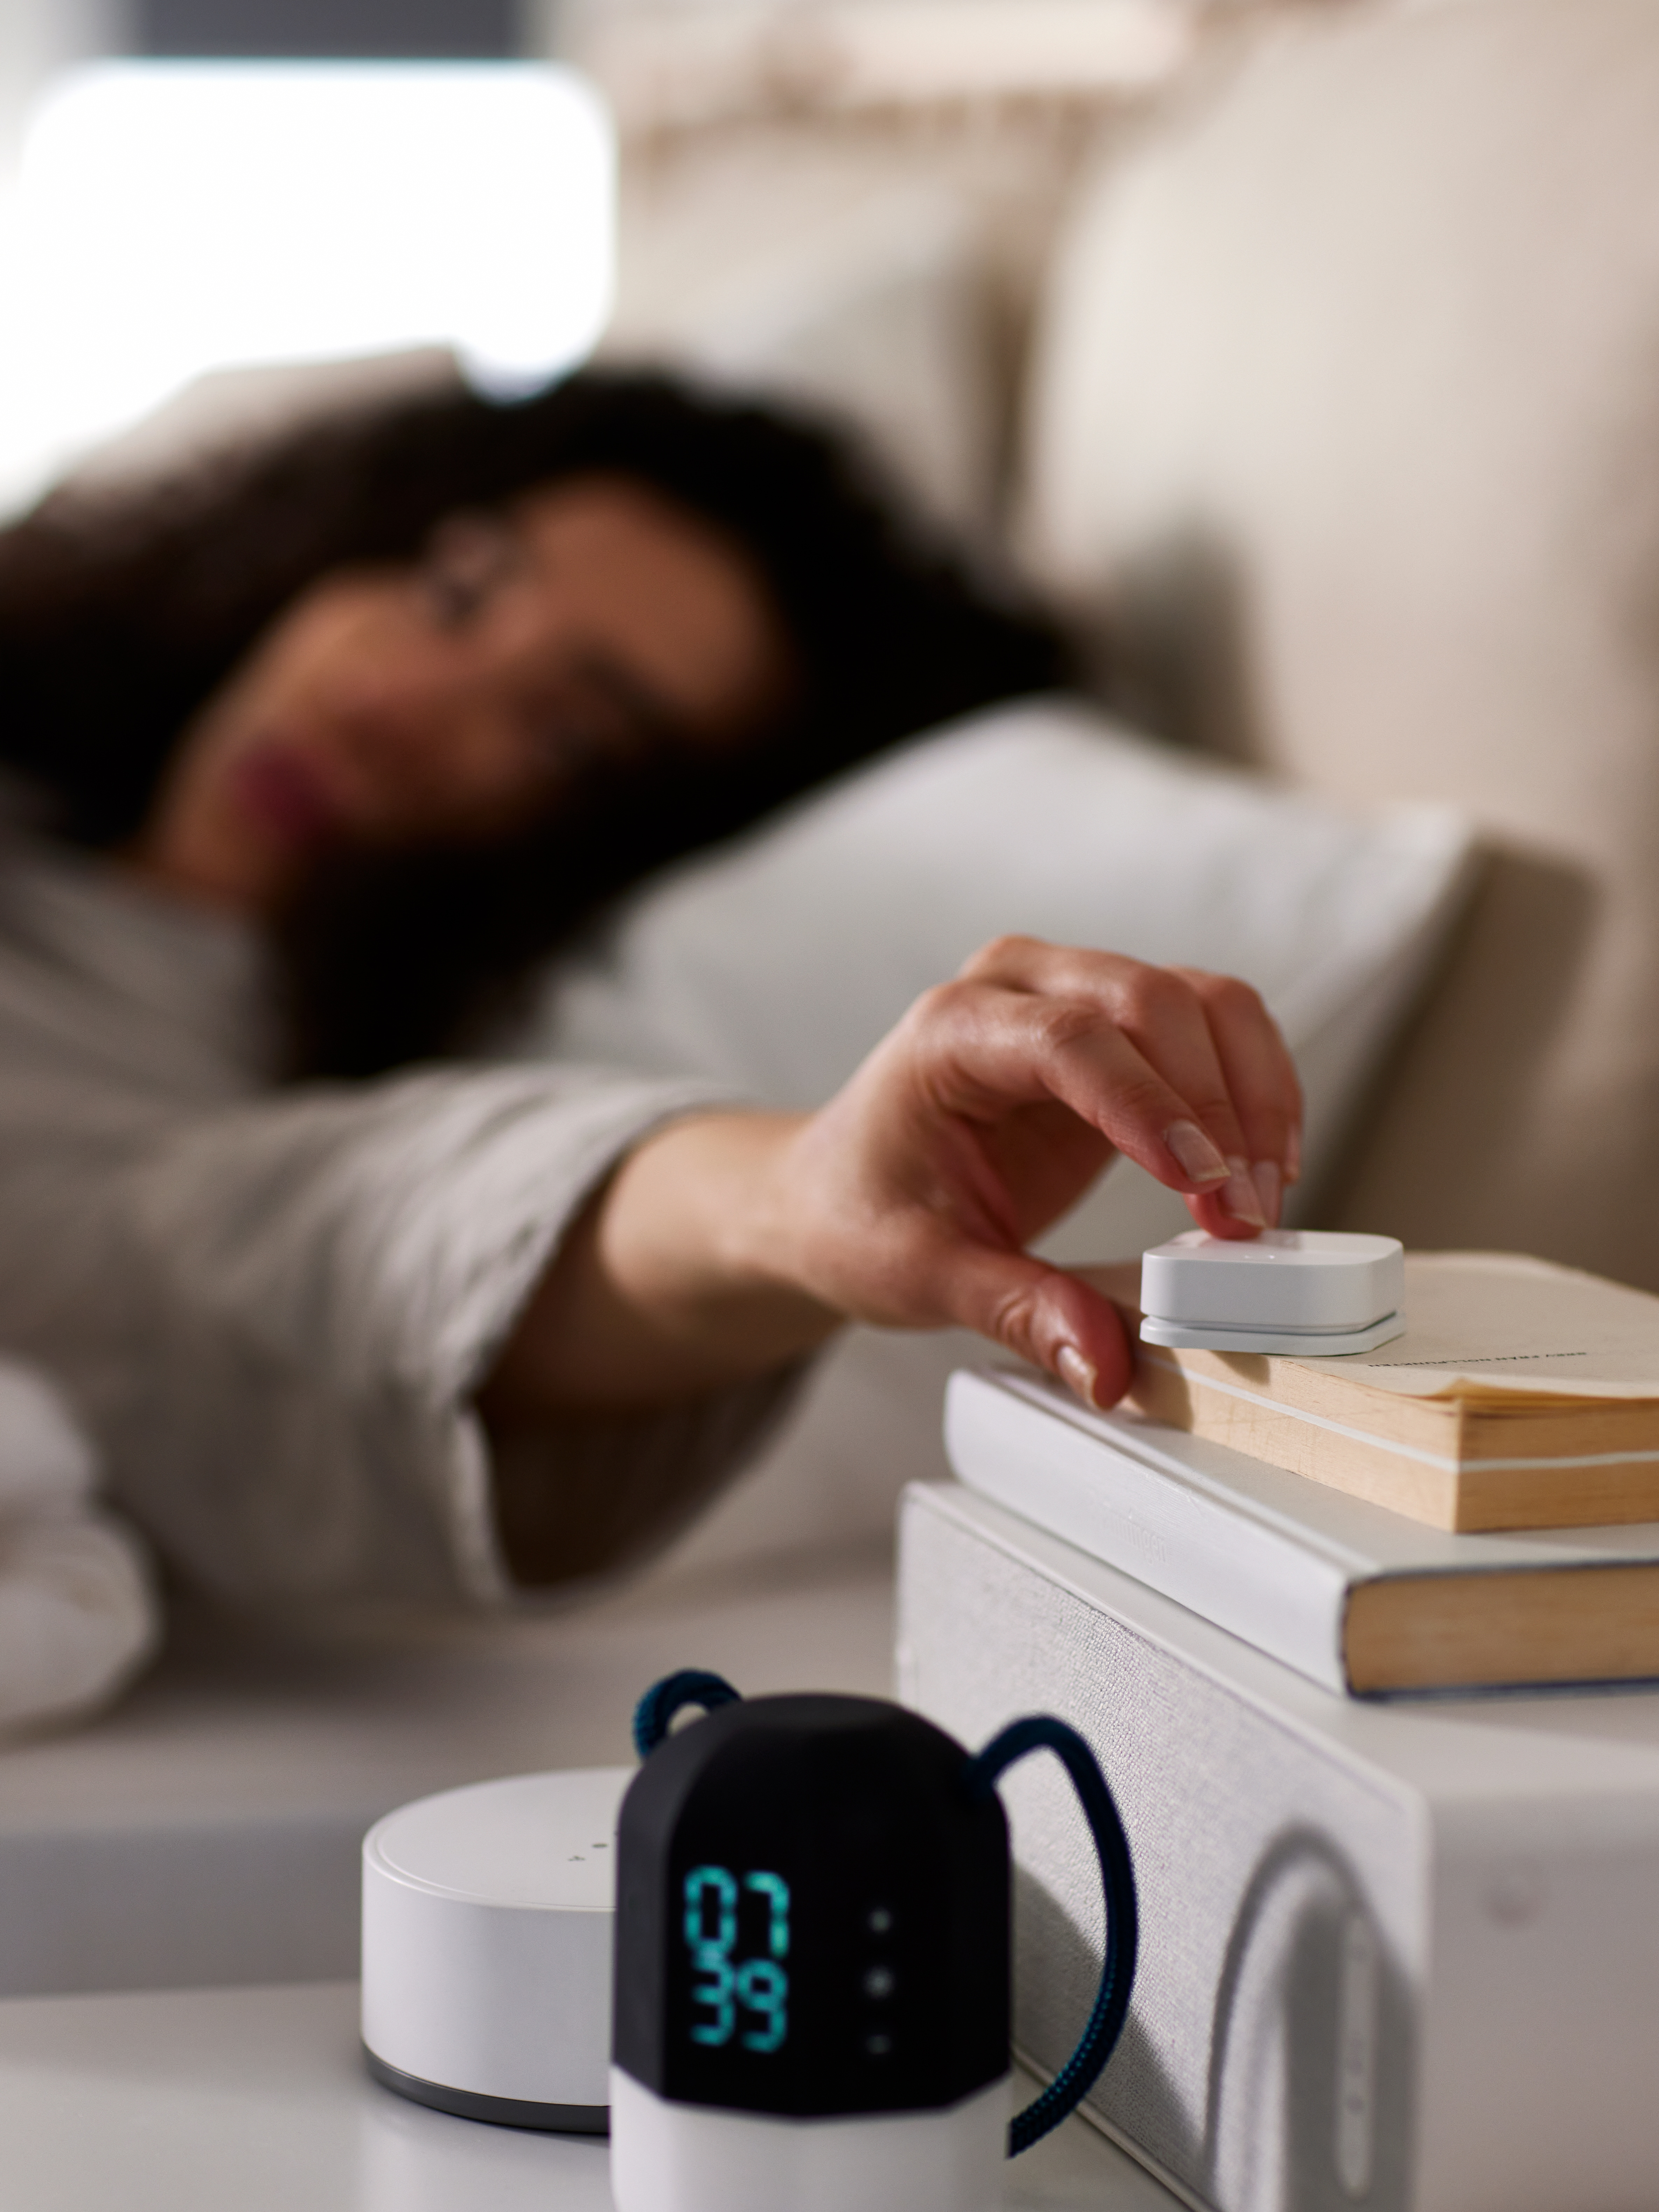 A woman lying in bed pushing a TRÅDFRI wireless dimmer on top of some books and a WiFi speaker on a white bedside table.